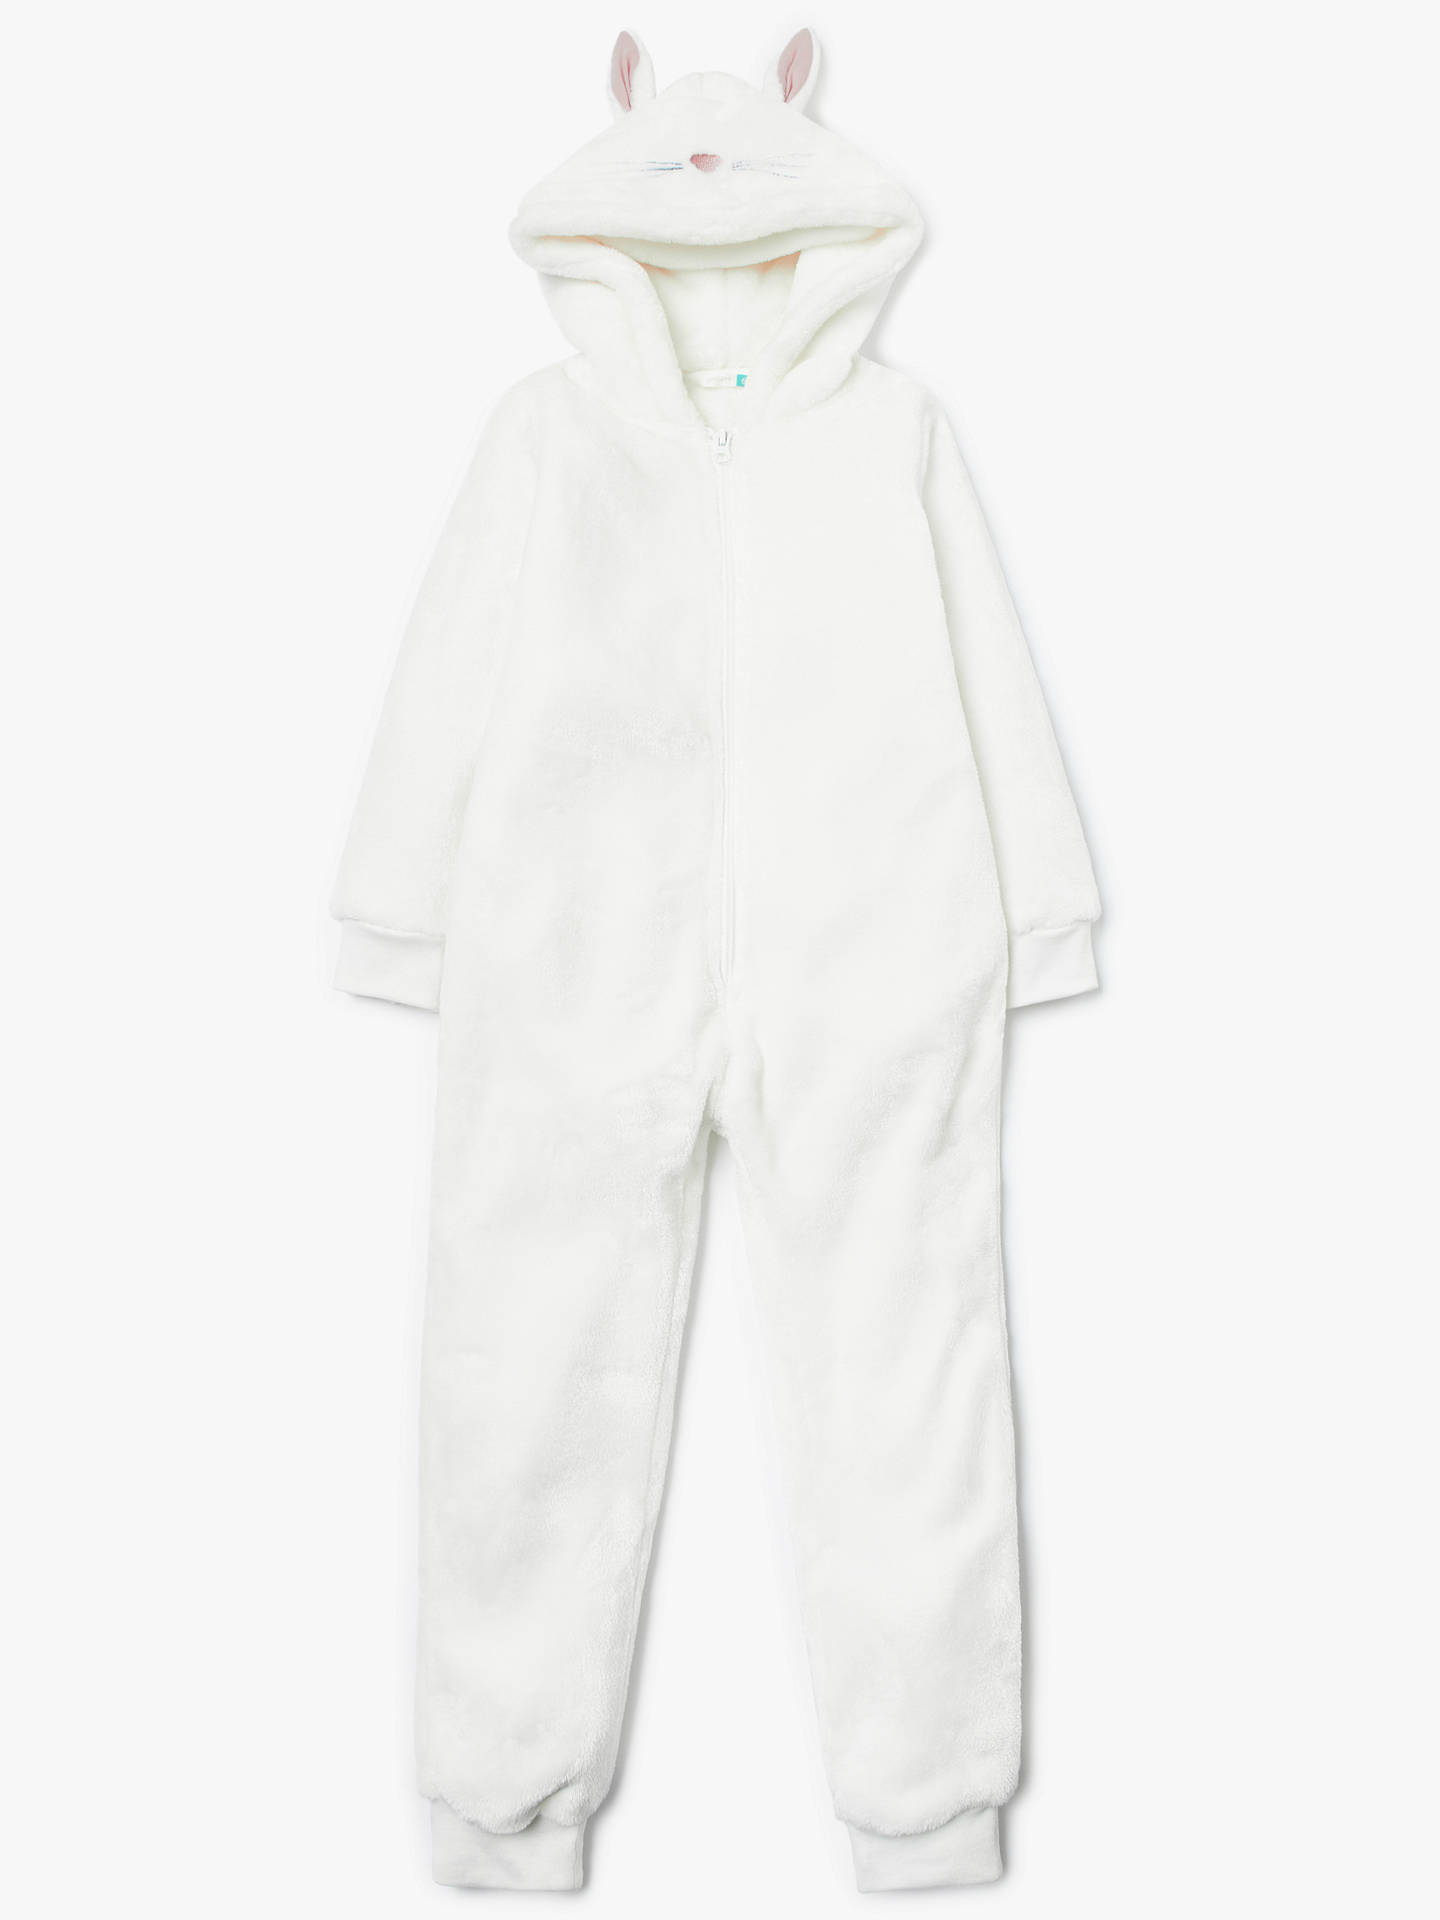 BuyJohn Lewis & Partners Girls' Bunny Fleece Onesie, White, 4 years Online at johnlewis.com